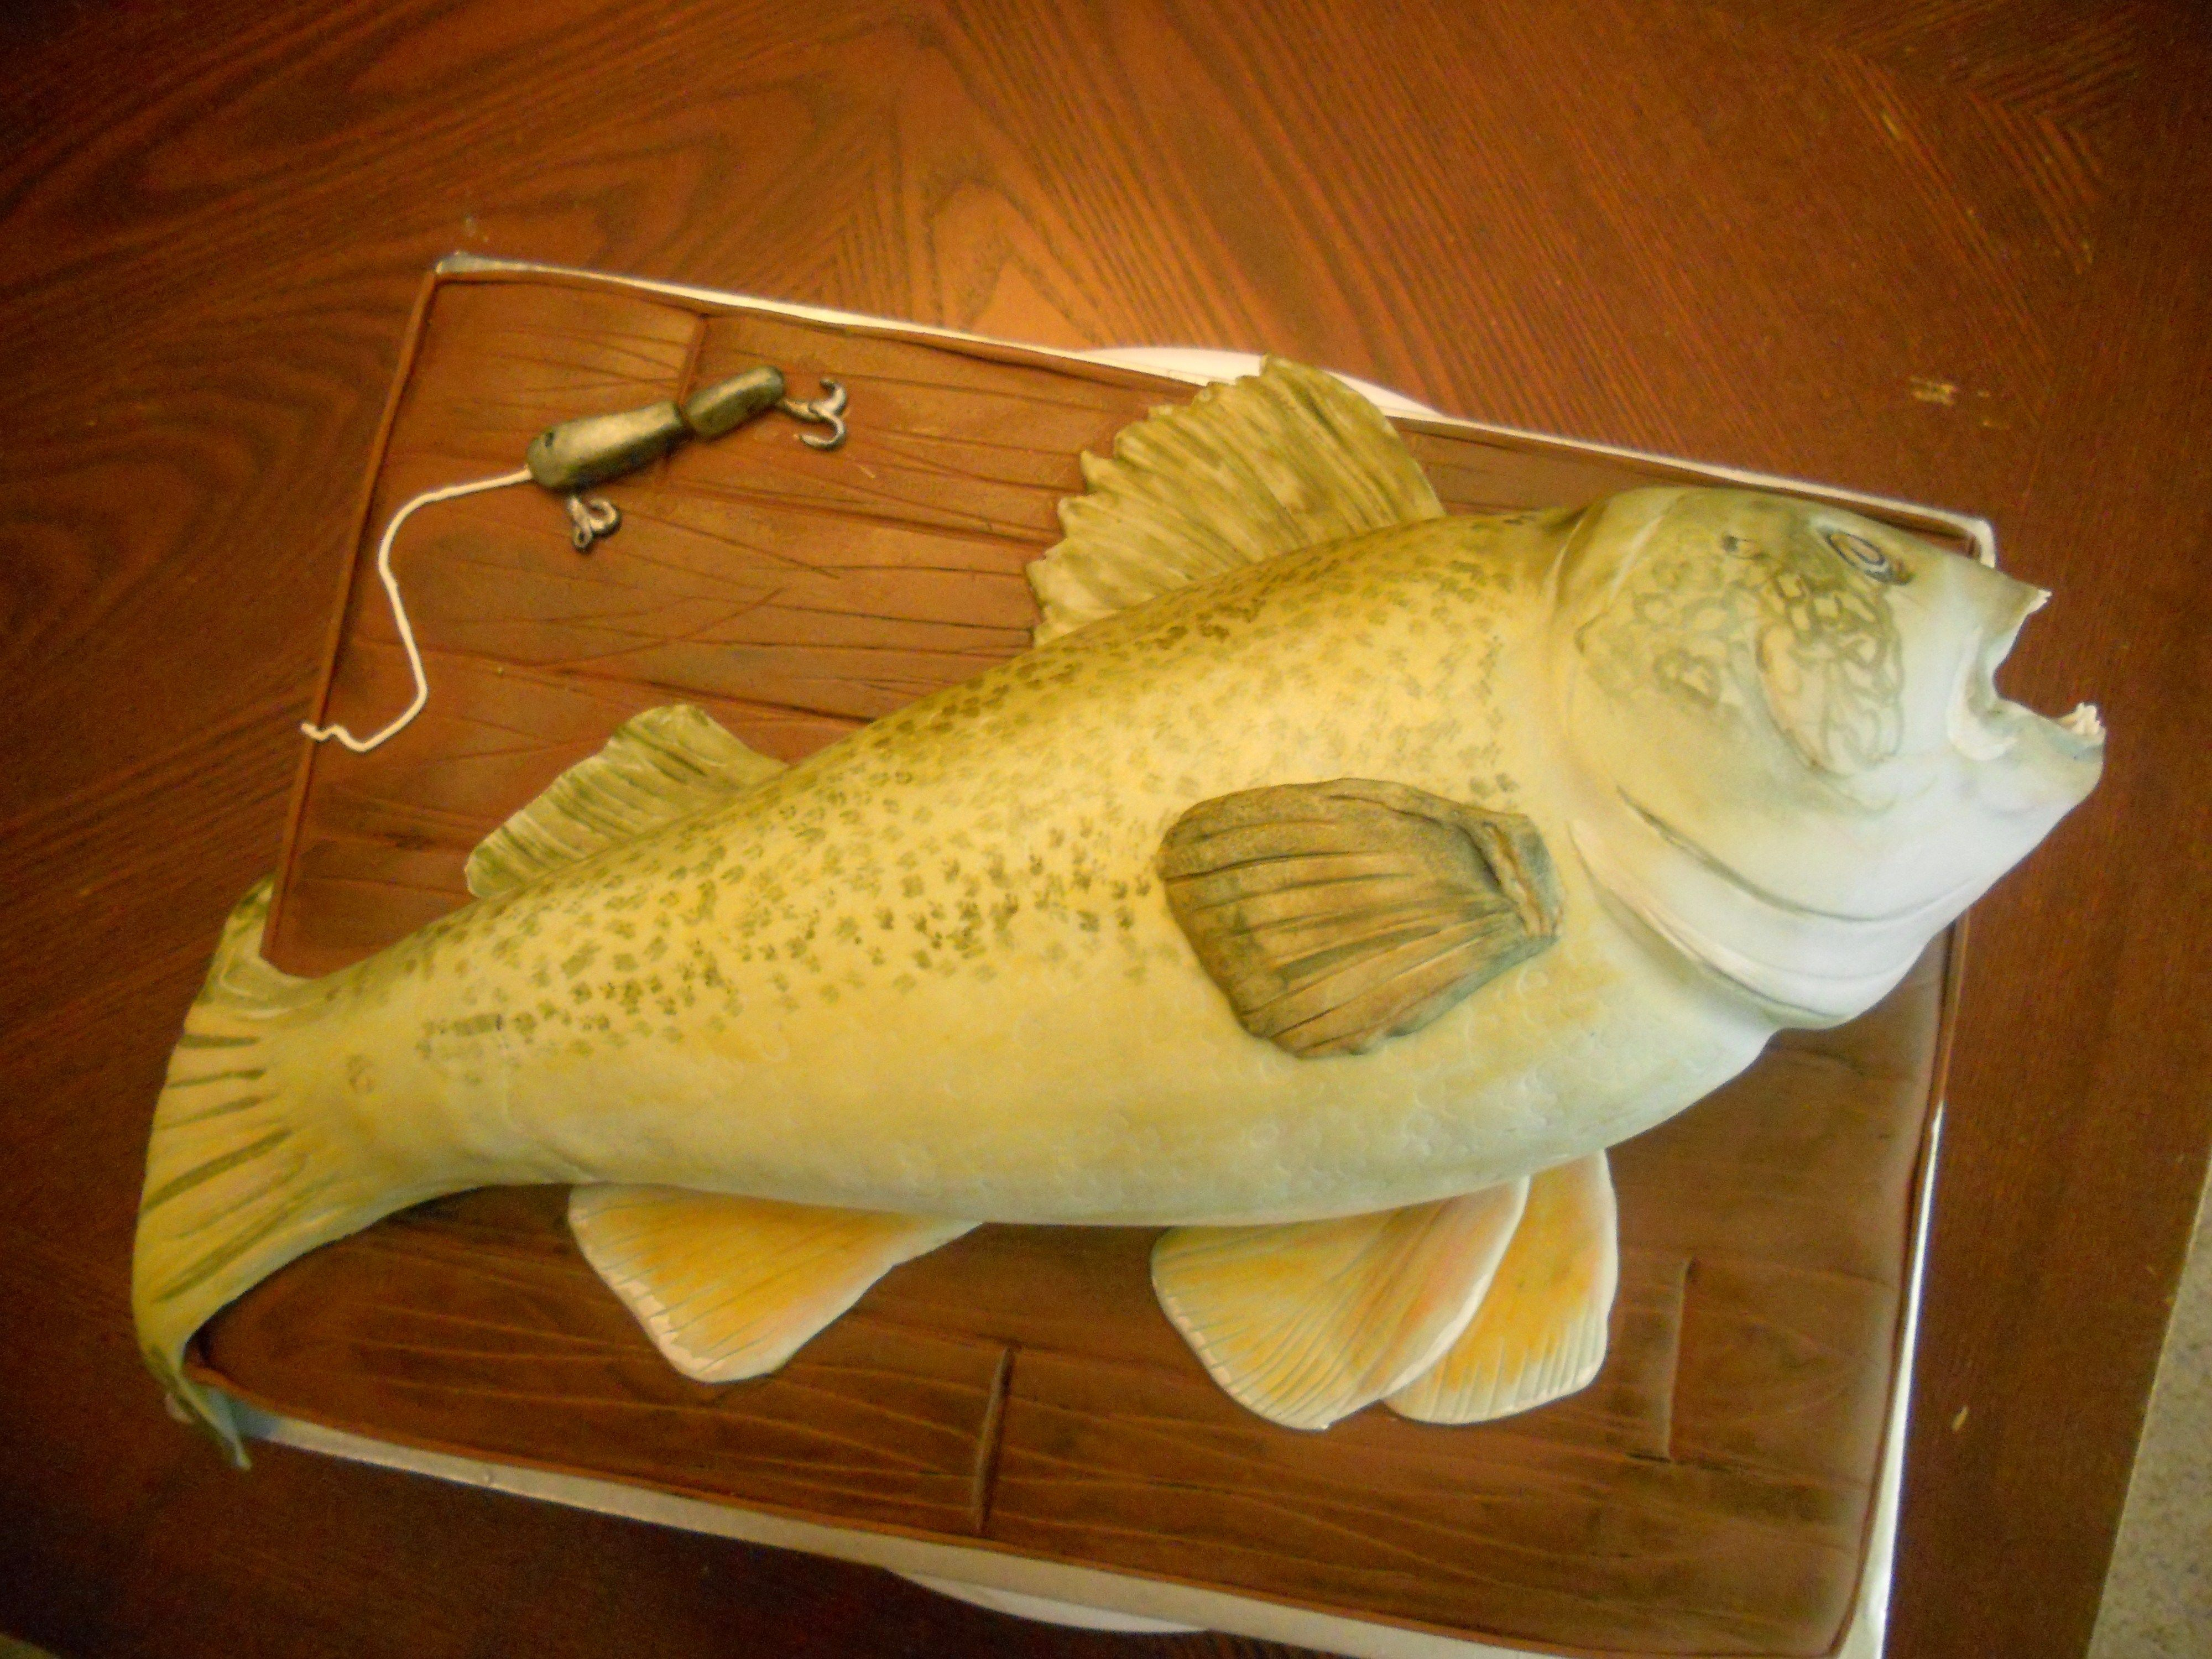 Pin walleye fish cake with pussy willow branches cake on for Fish in pussy